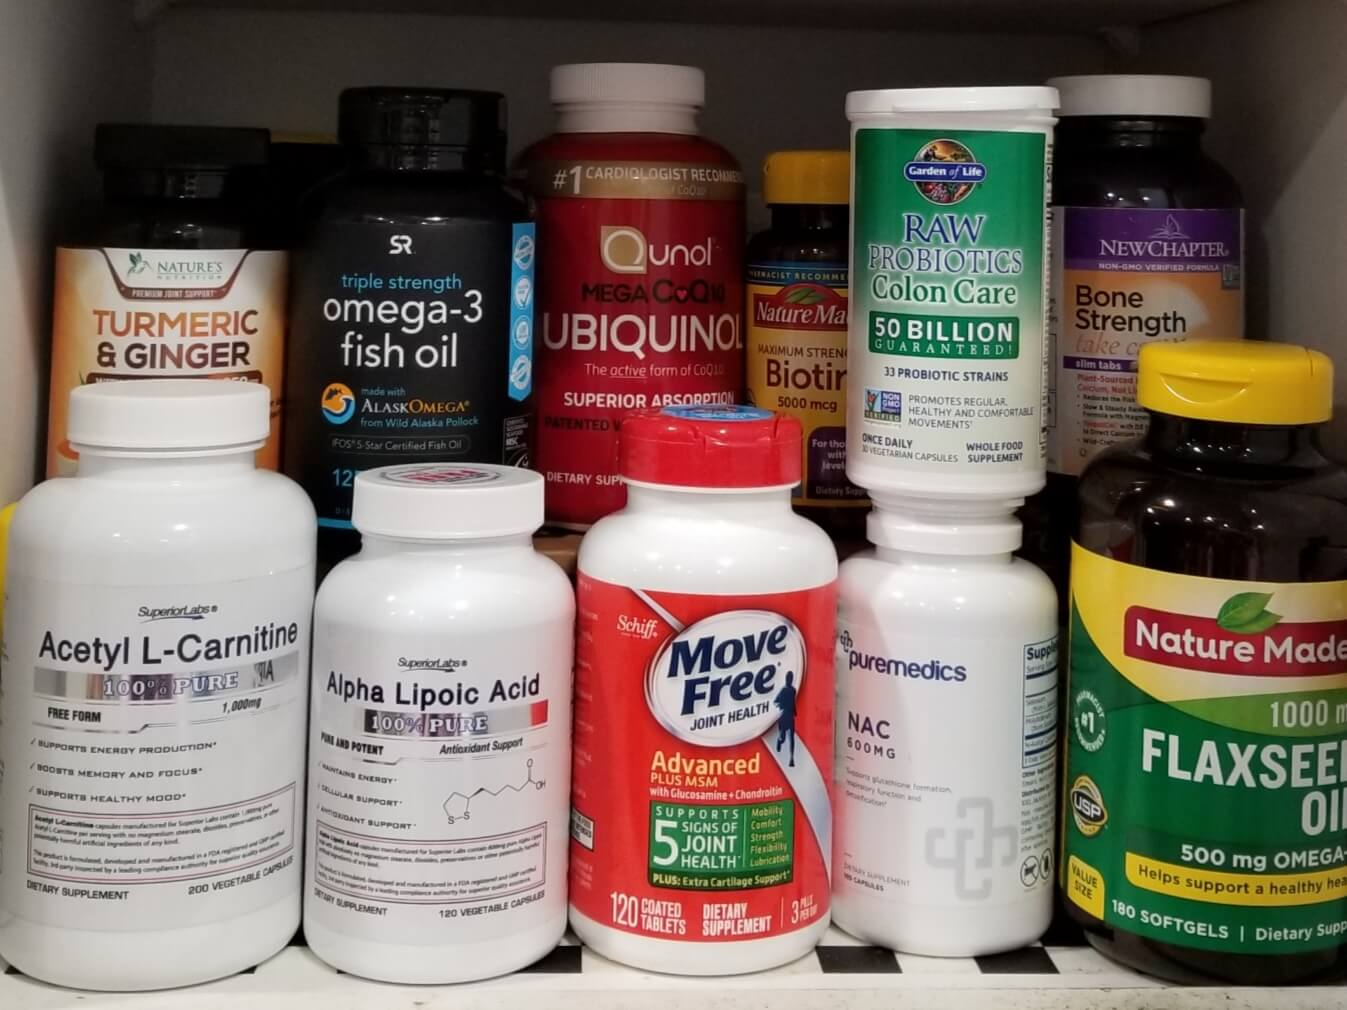 Supplements that Helped My Fatigue and Joint Pain after COVID-19